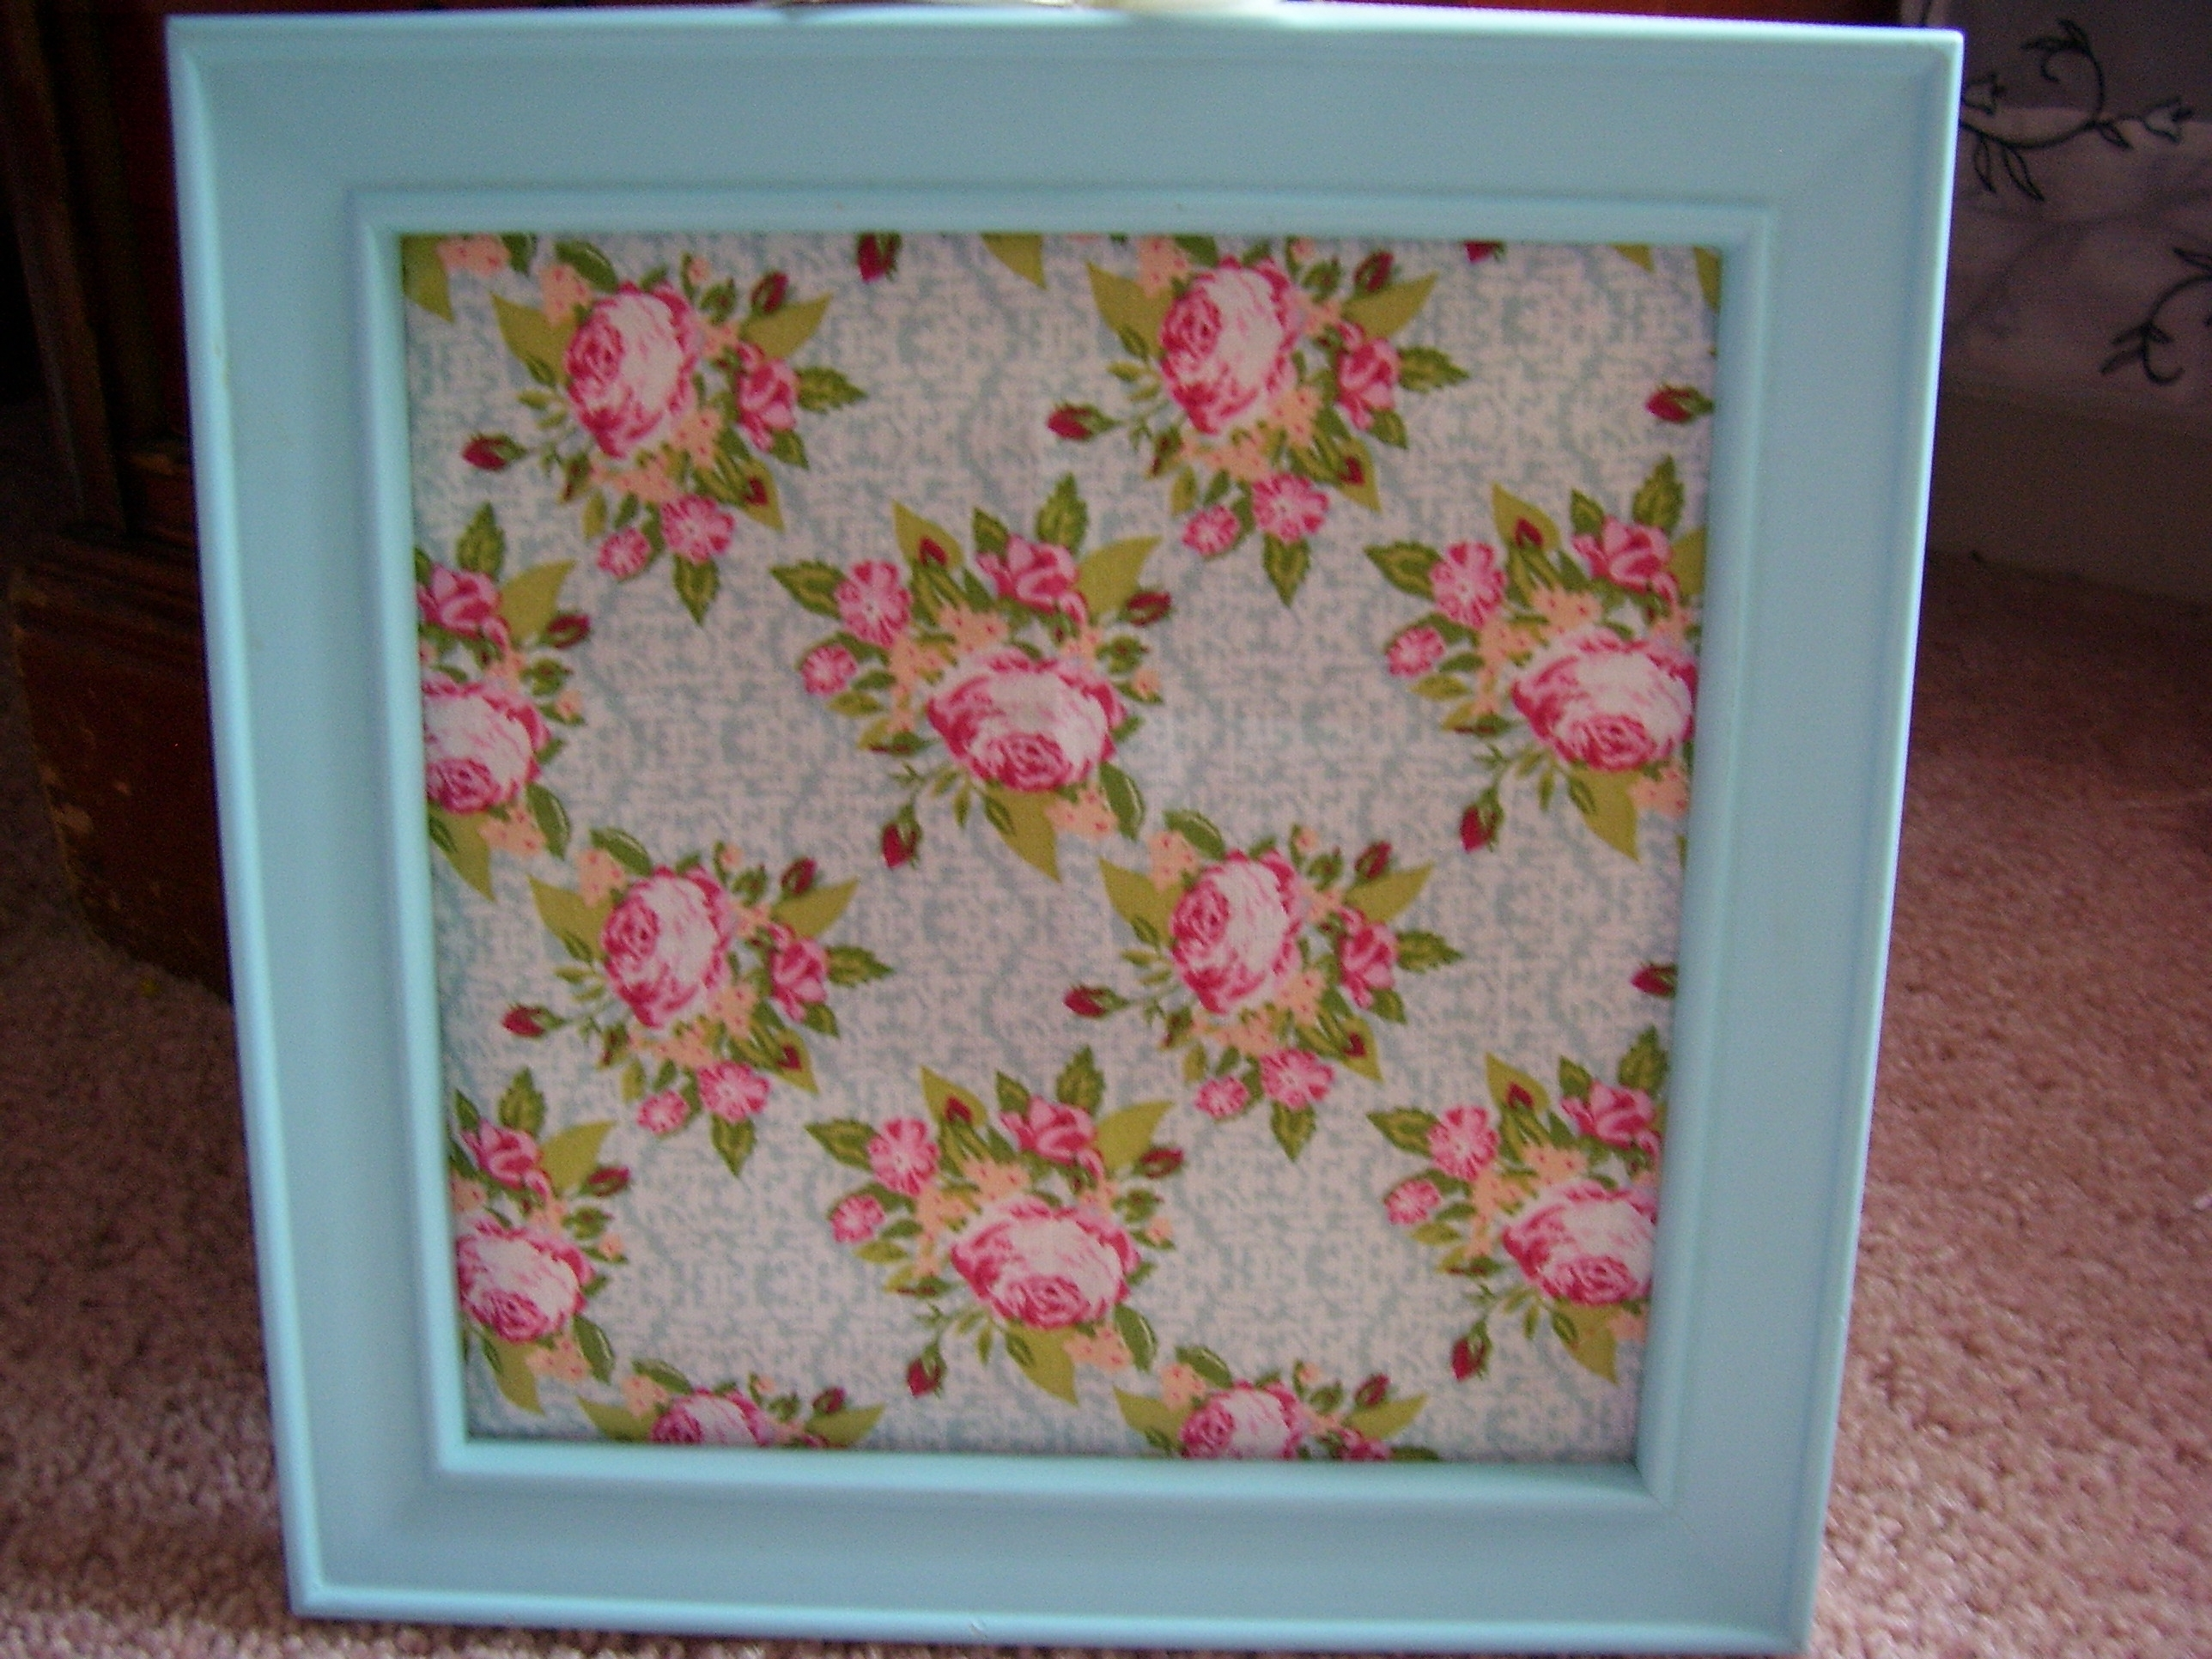 Well Known Floral Fabric Wall Art Intended For Spring & Easter Framed Fabric Wall Art – Quiver Full Of Blessings (View 2 of 15)